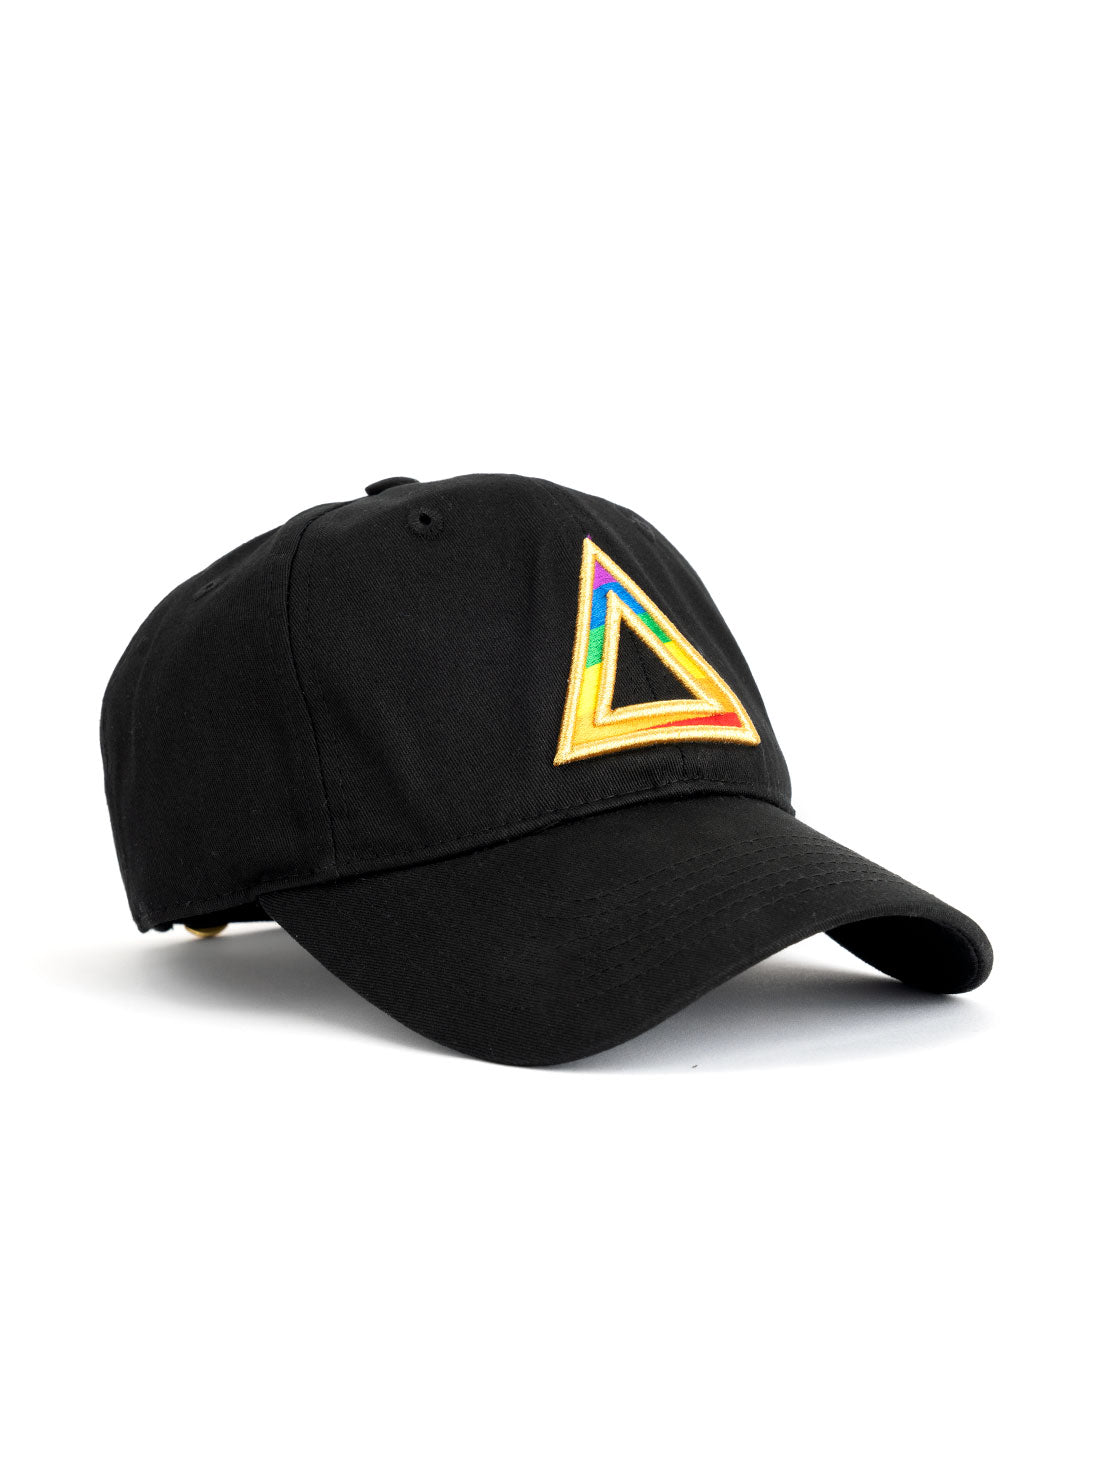 Trianguloswag Pride EDITION